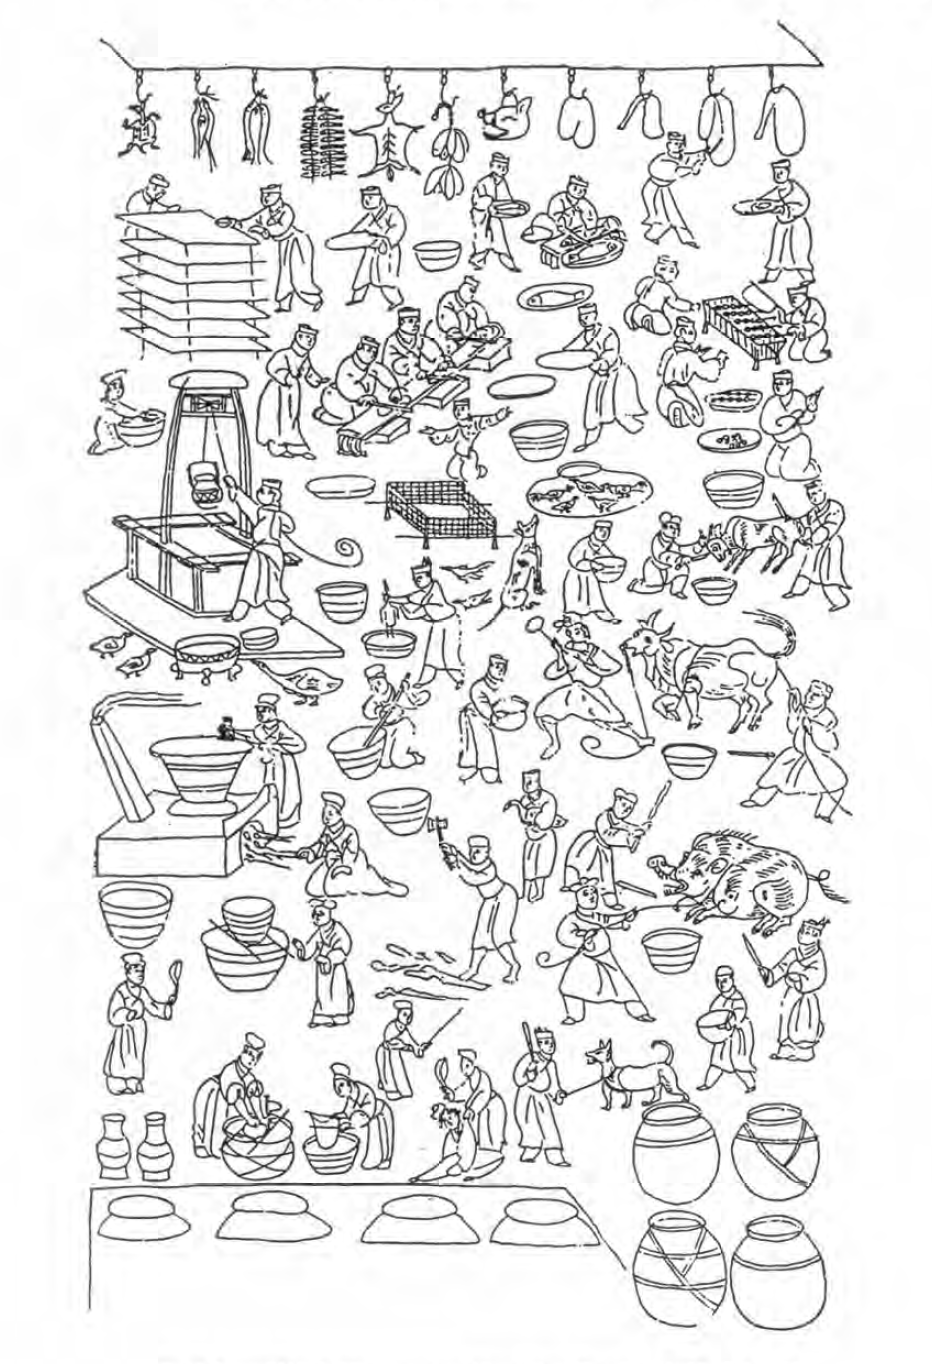 A black and white hand drawn reproduction of a busy kitchen scene in Han times